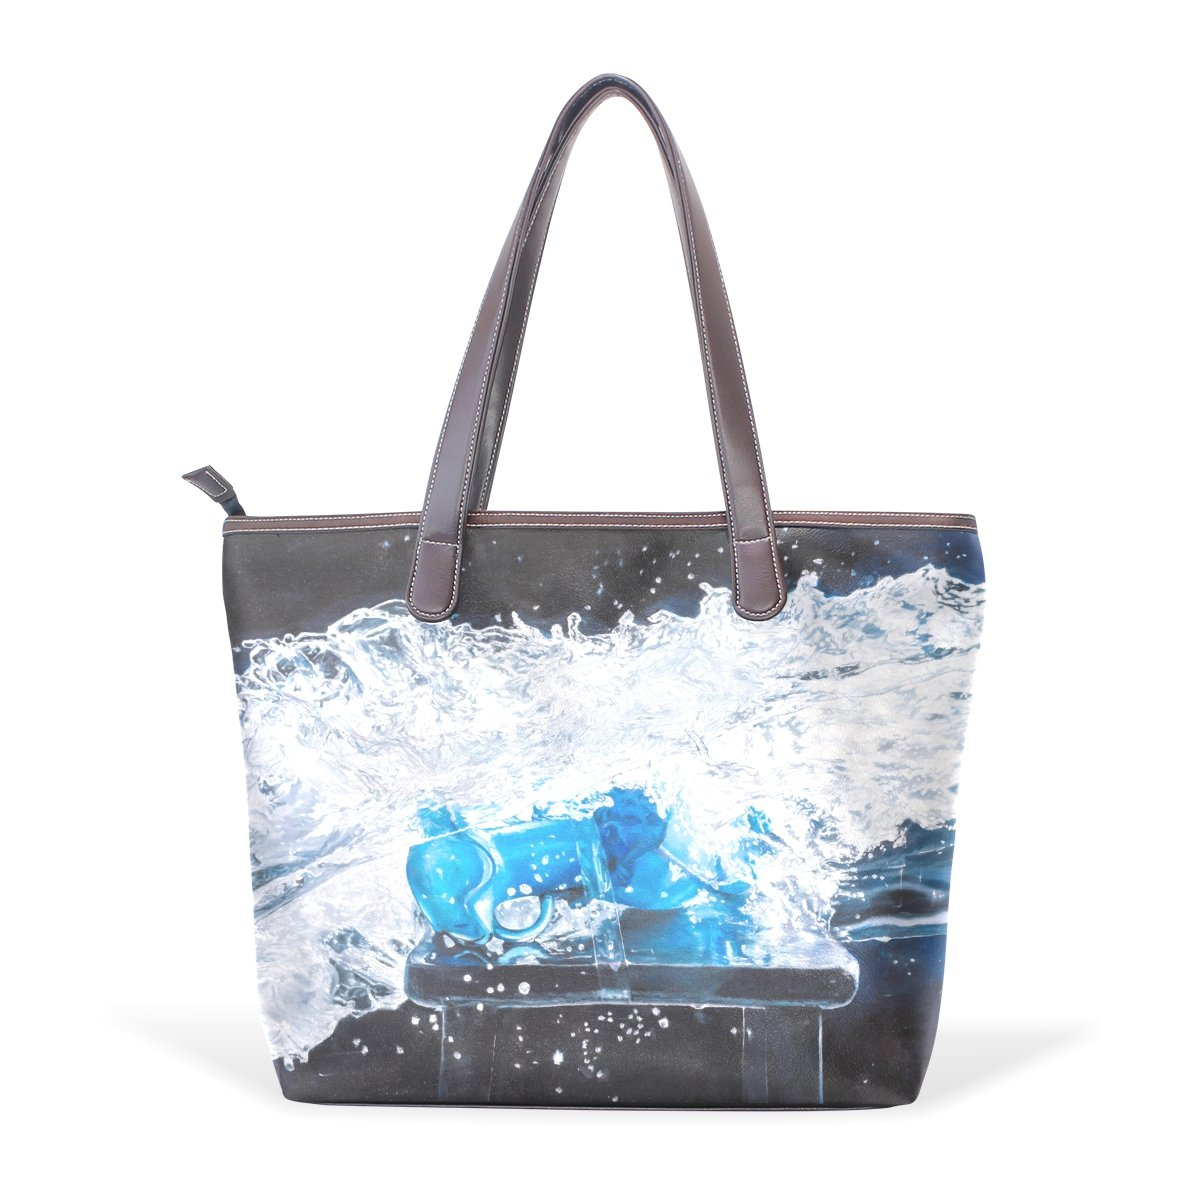 Ye Store Water Waves Lady PU Leather Handbag Tote Bag Shoulder Bag Shopping Bag